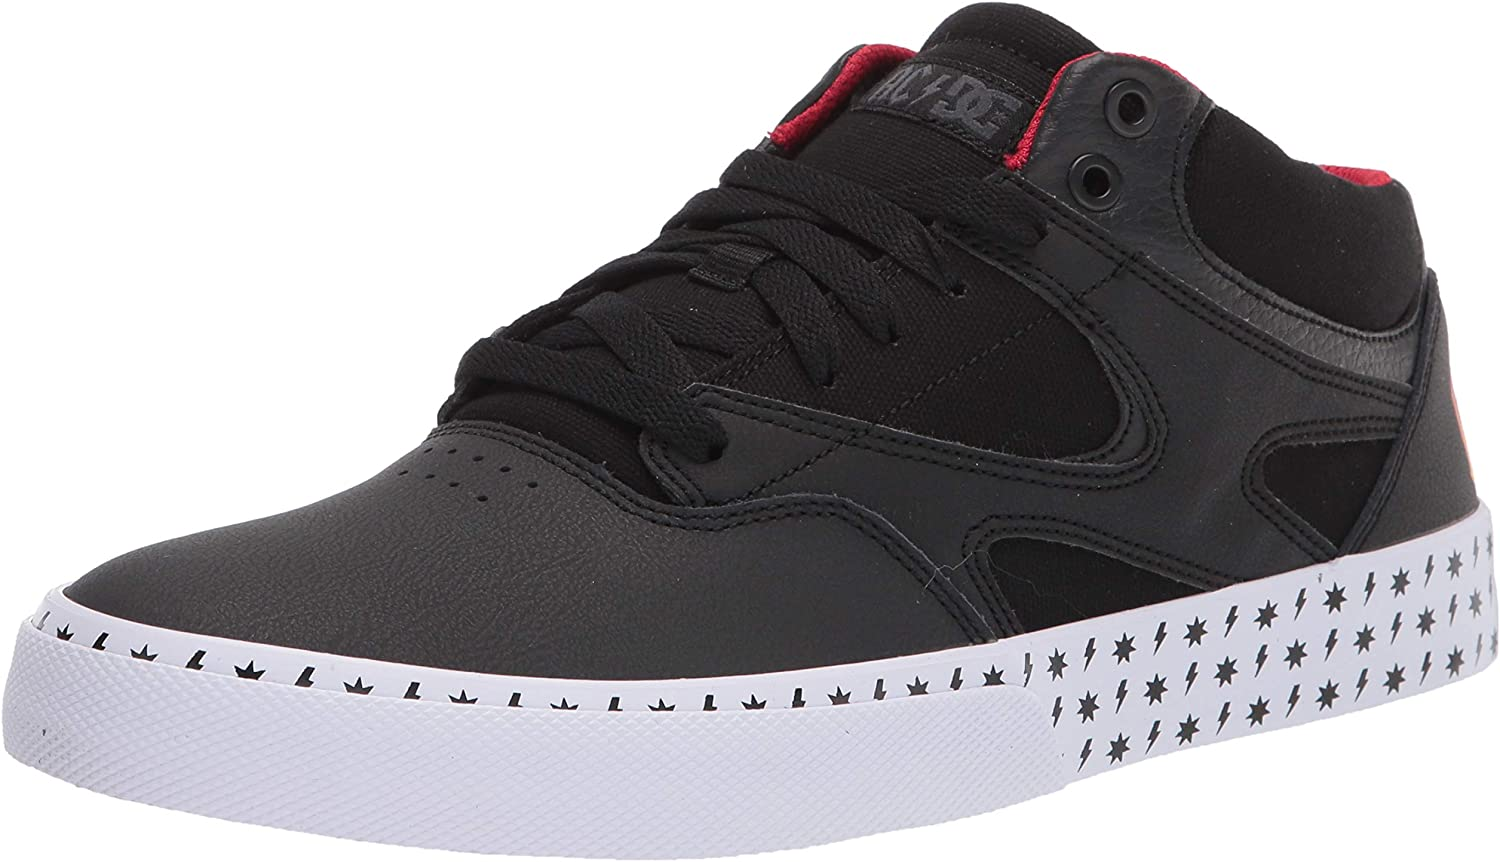 DC Mens Kalis Vulc Mid Ac Band Limited Edition Sneaker Skate Shoe